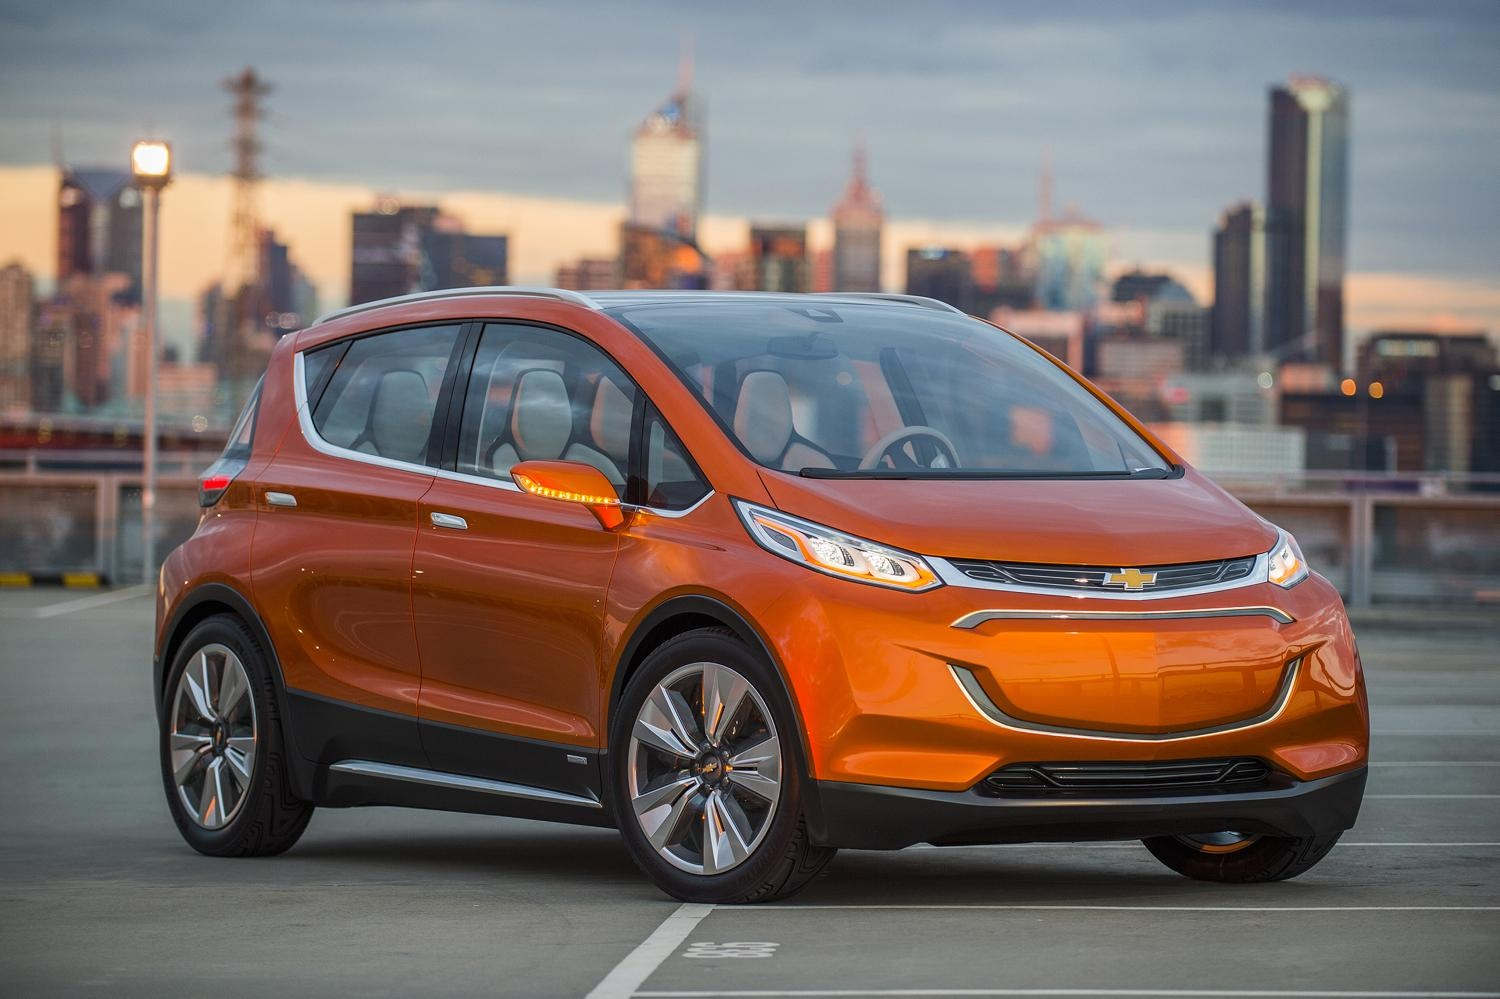 Chevrolet's Bolt, an all-electric car expected in showrooms as soon as 2017, will be able to travel 200 miles between charges and cost around $30,000 after government incentives, General Motors says.